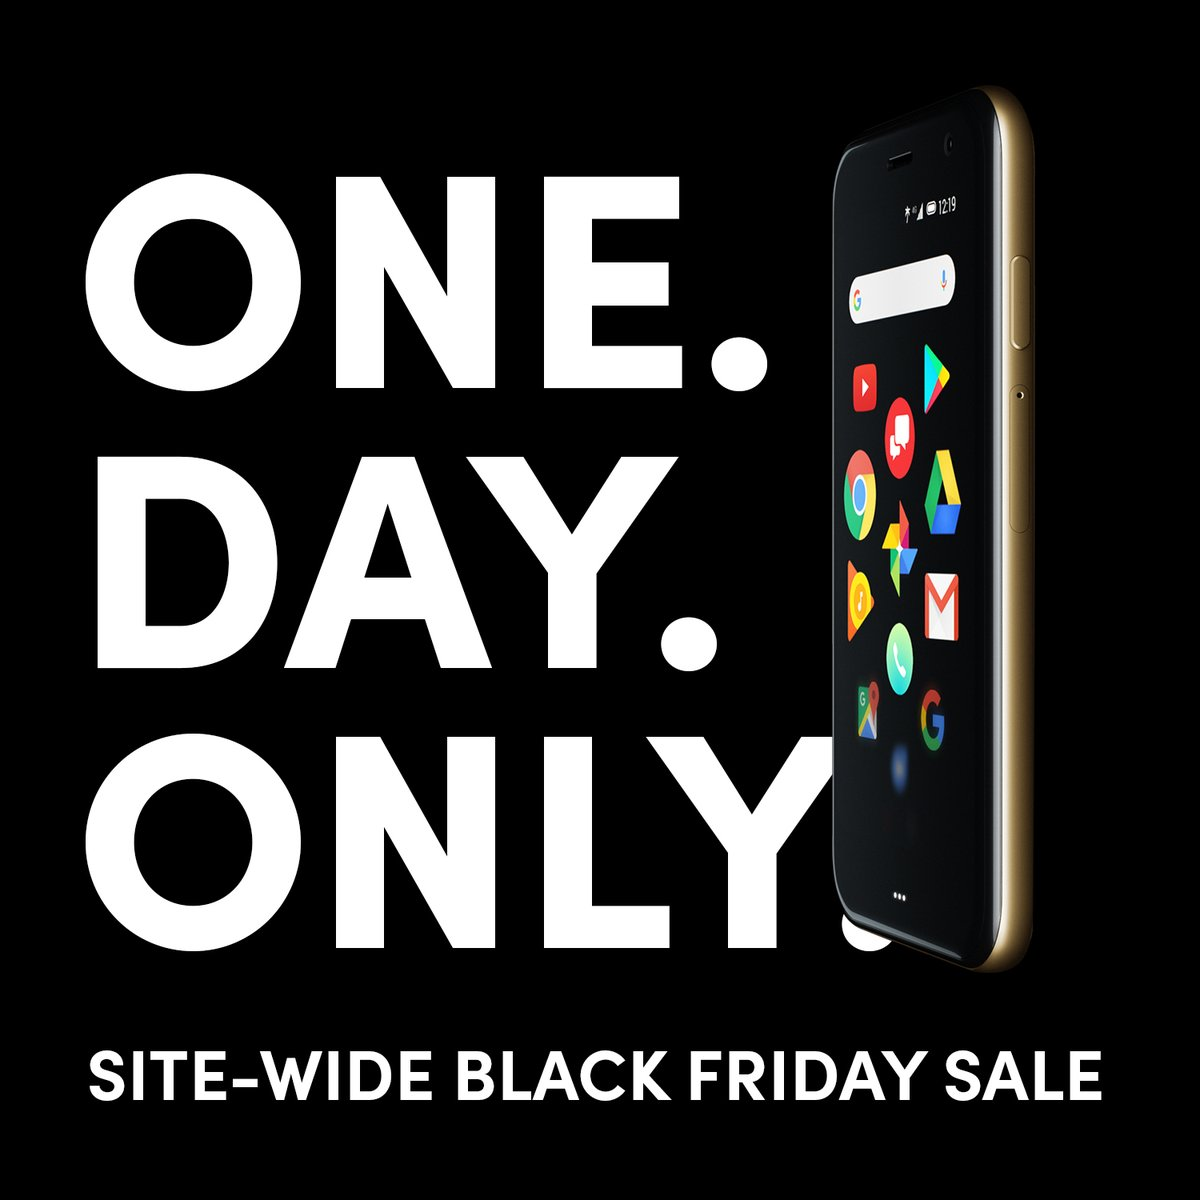 ONE DAY ONLY. SITE WIDE BLACK FRIDAY SALE.  #LifeMode #BlackFriday #PalmPhone #BlackFriday